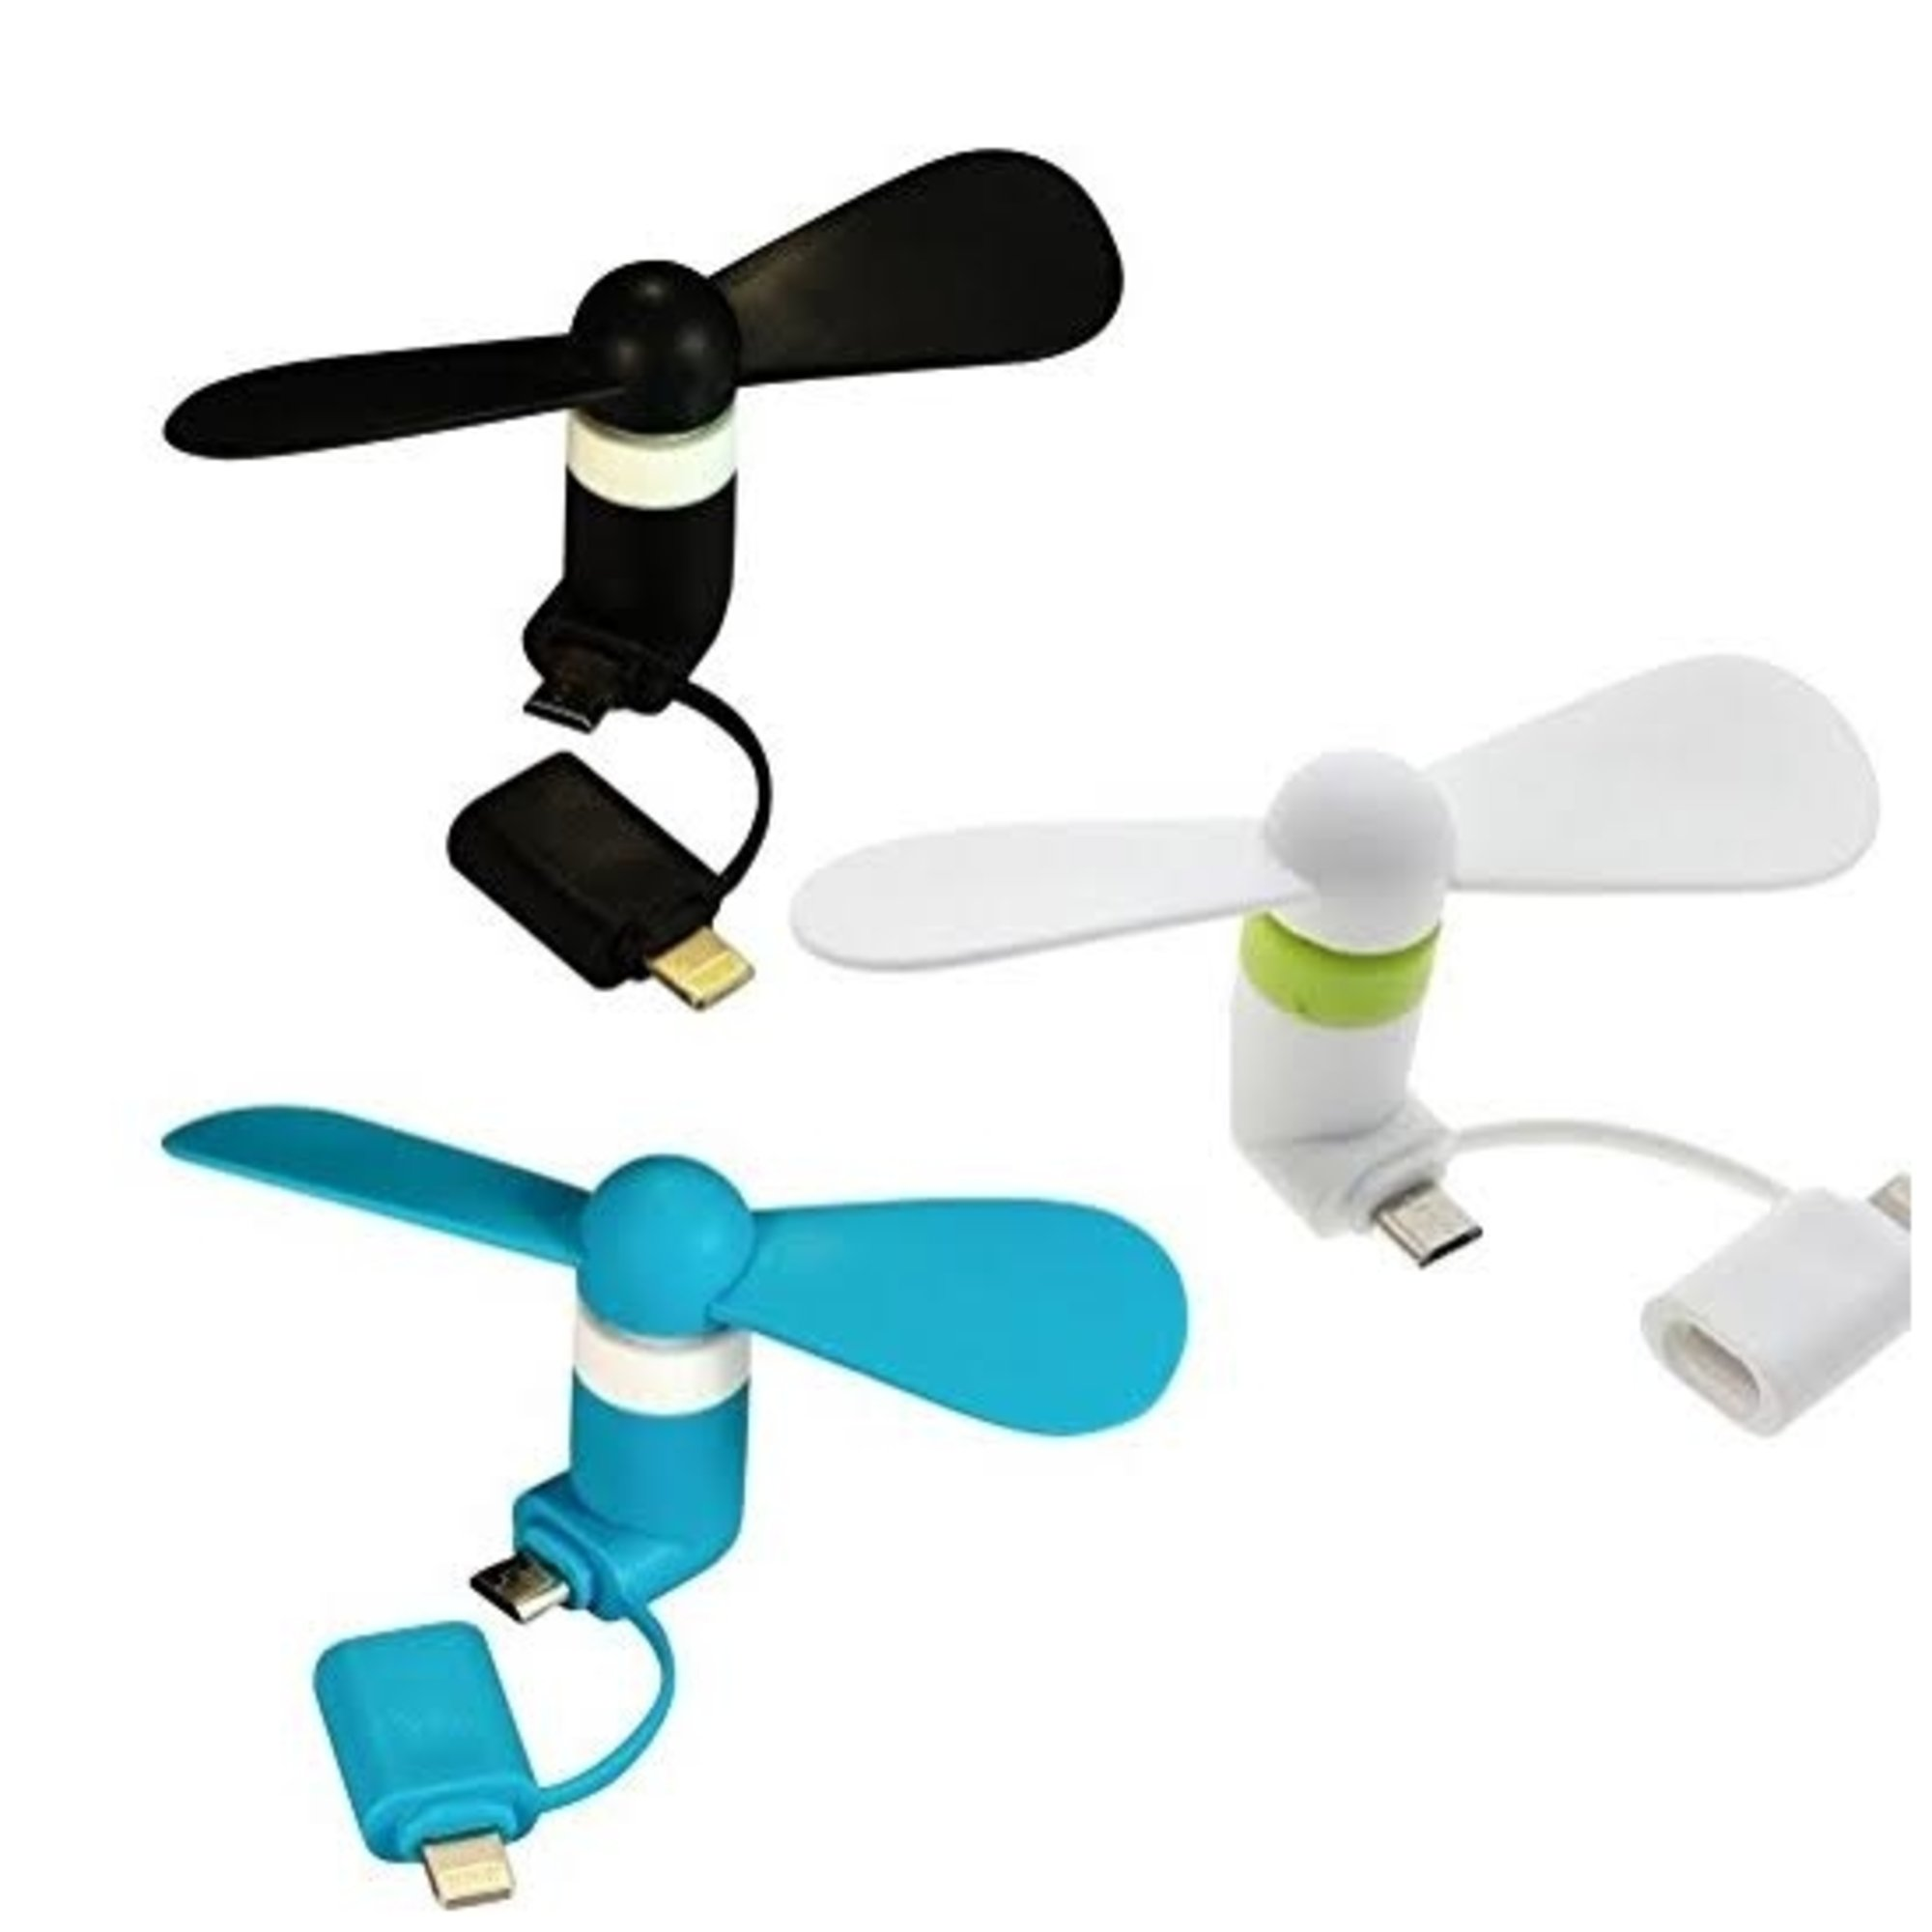 Mini Fan usb Phone Fan for iPhone and Android, Micro usb fan for i phone and any cell phone fan, Best usb cooling fan - Black/Blue/White - 3 Piece